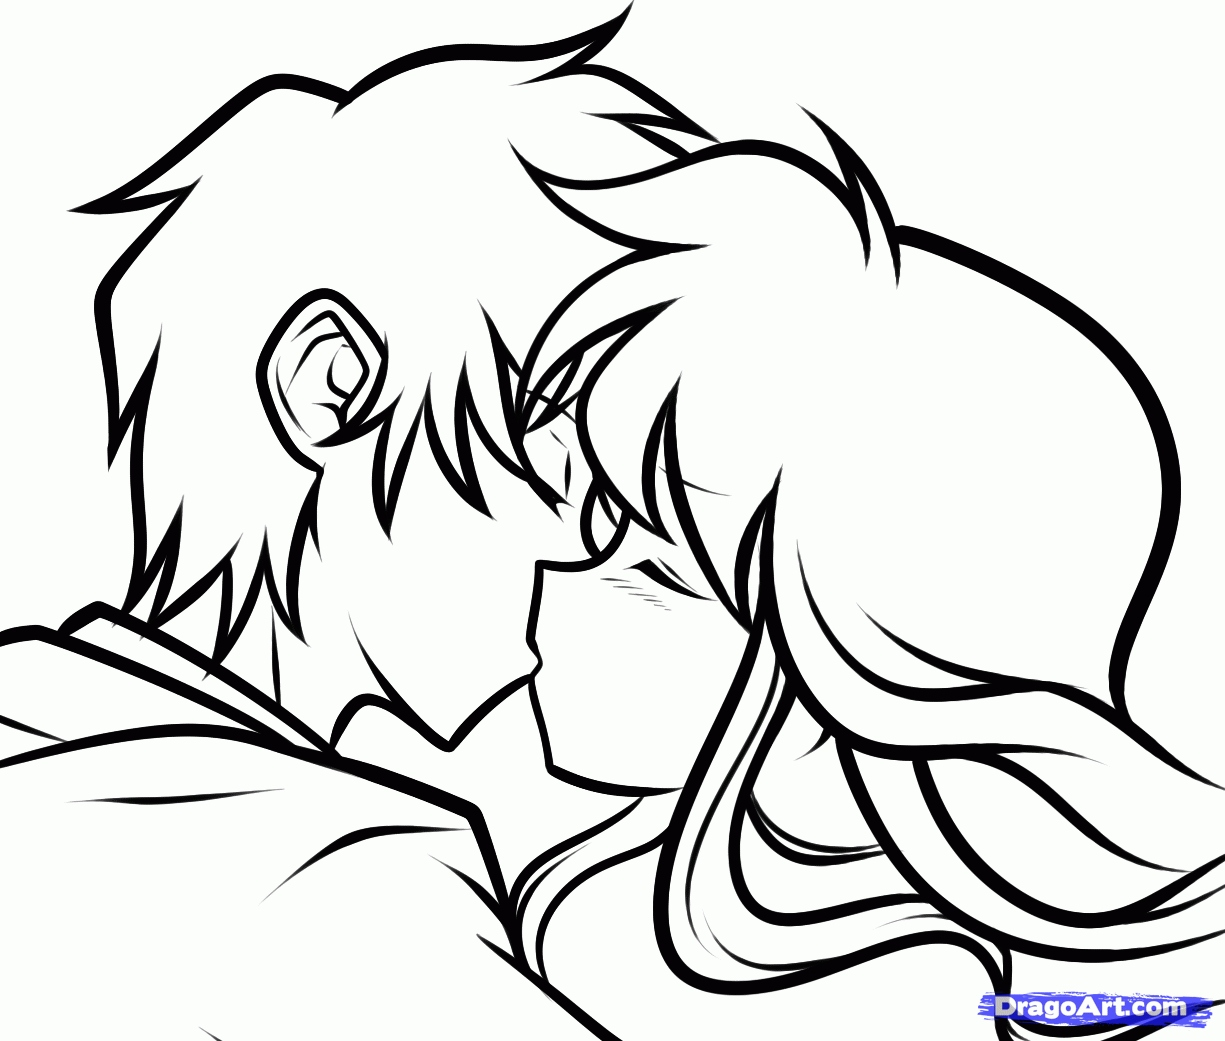 1225x1041 Kiss Coloring Pages Best Of Free Coloring Pages Of Anime People